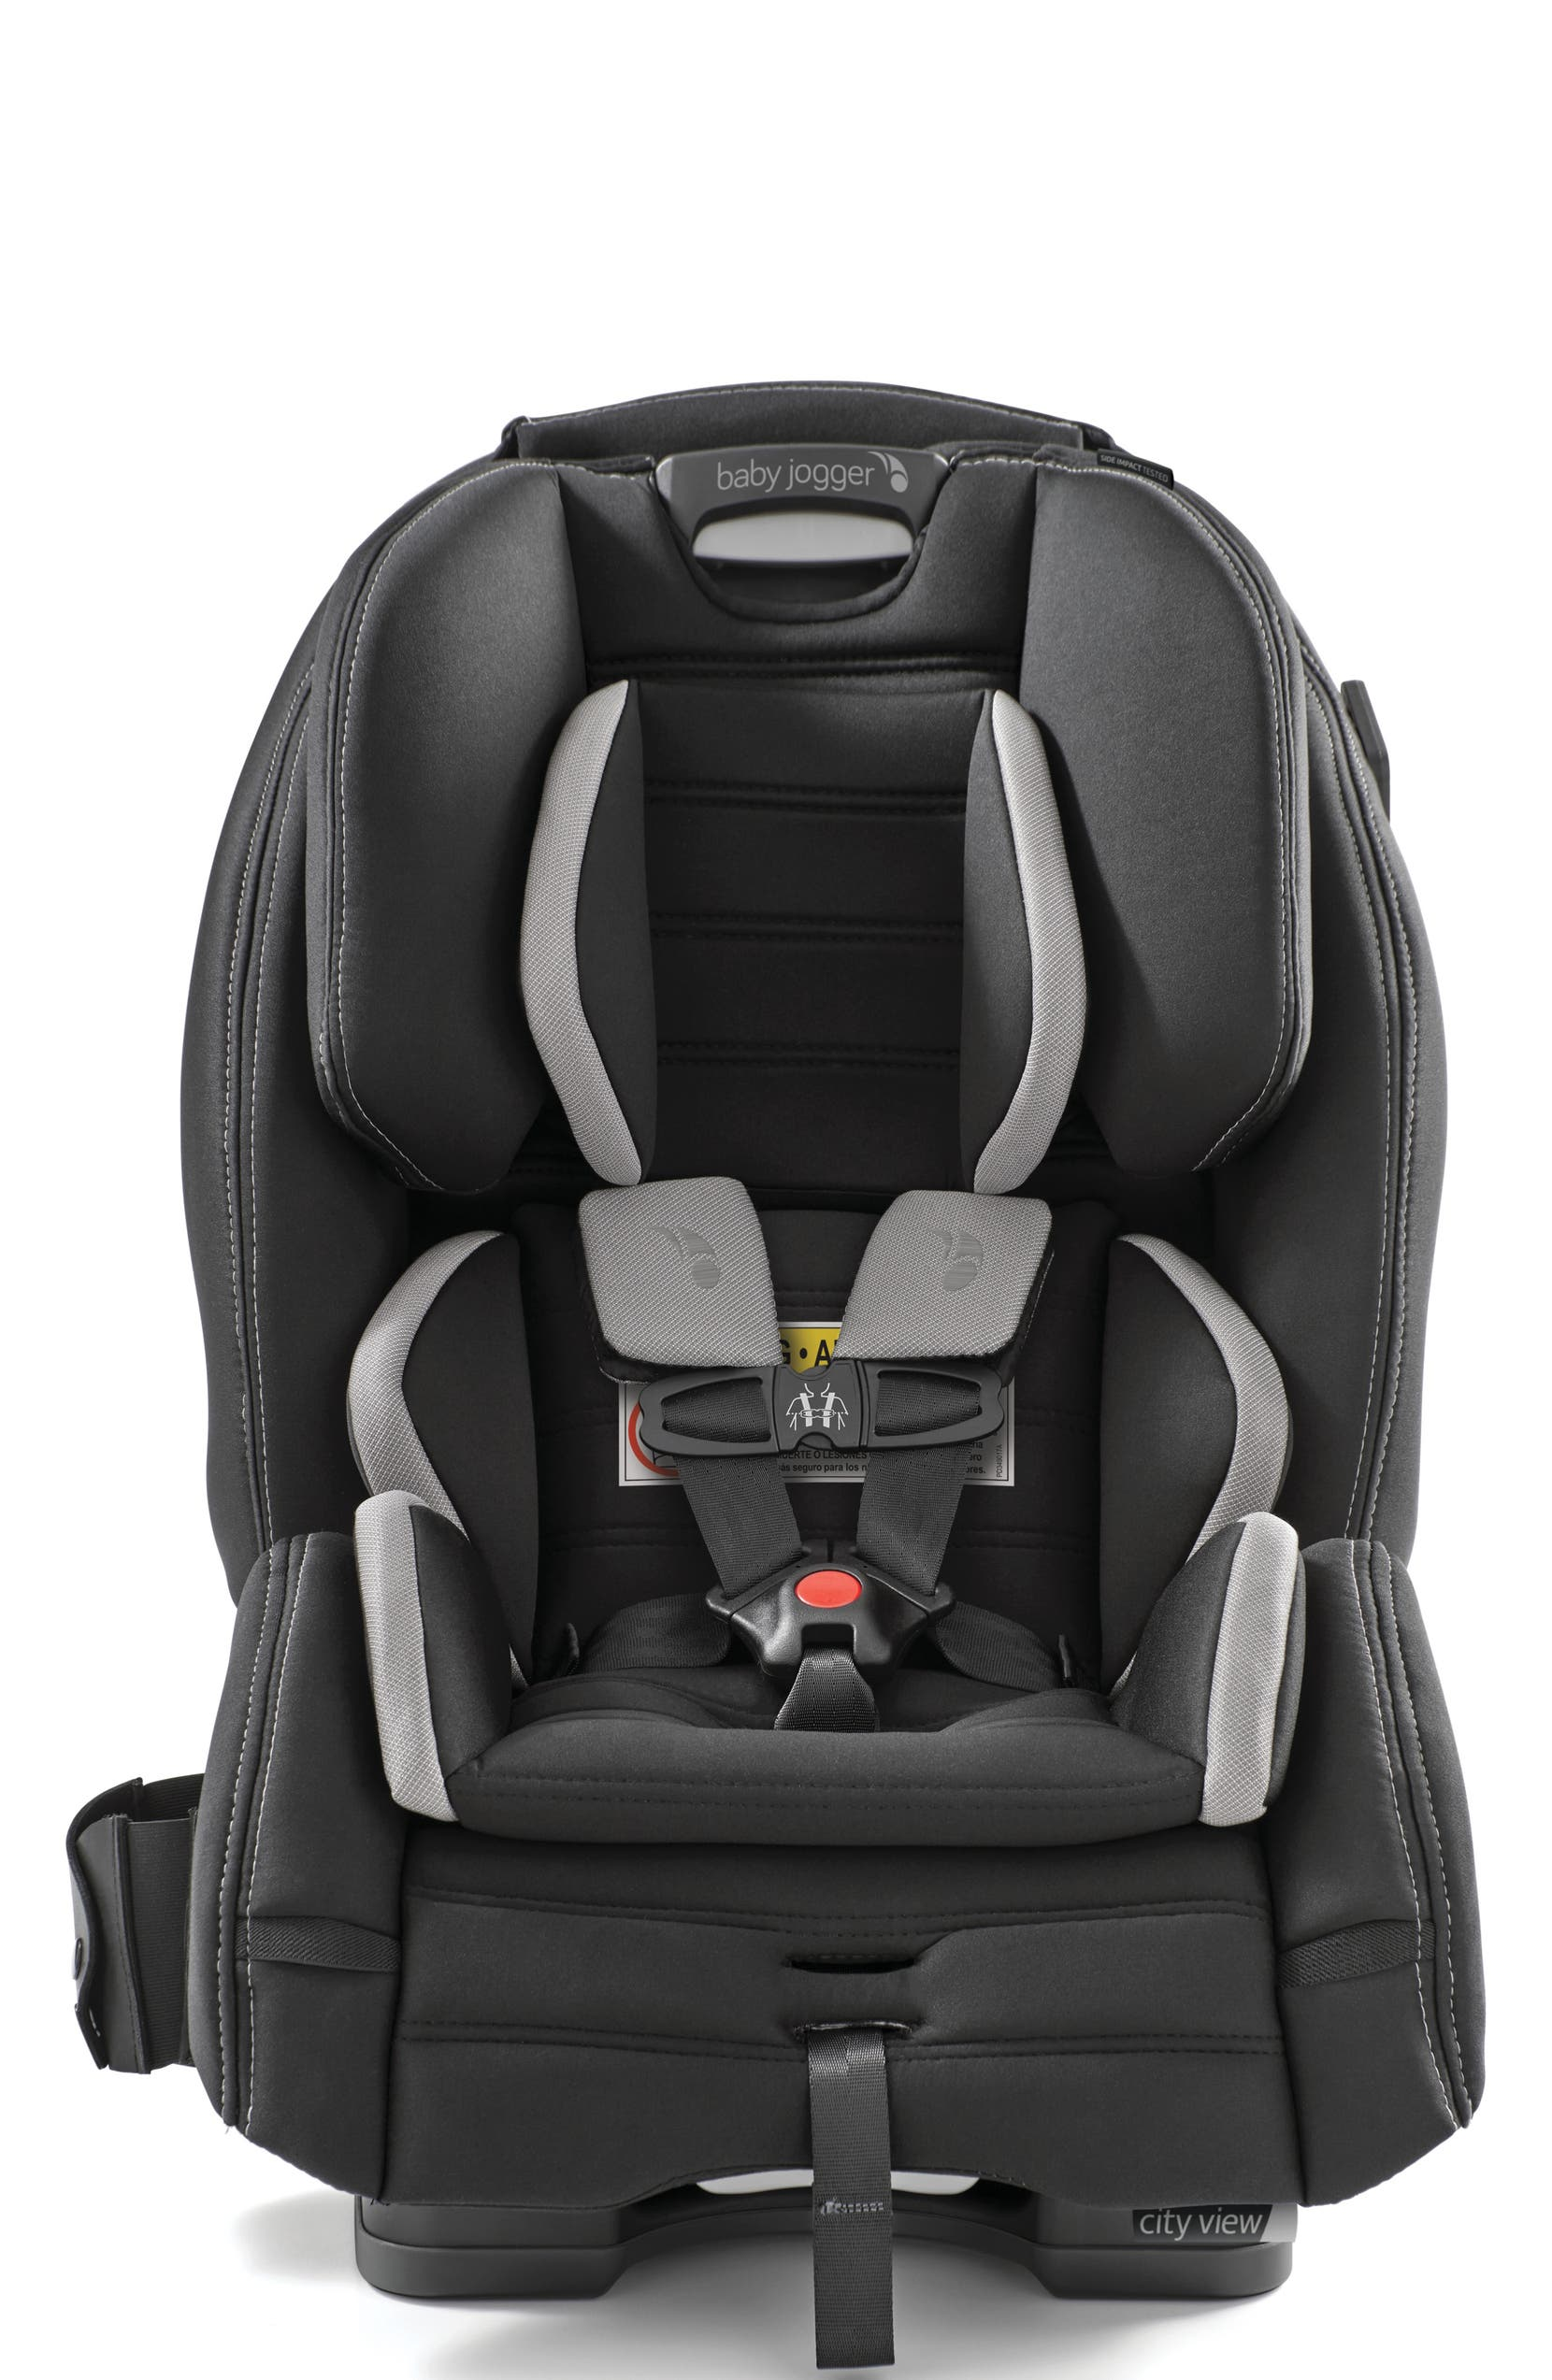 City View 2018 All In One Convertible Car Seat